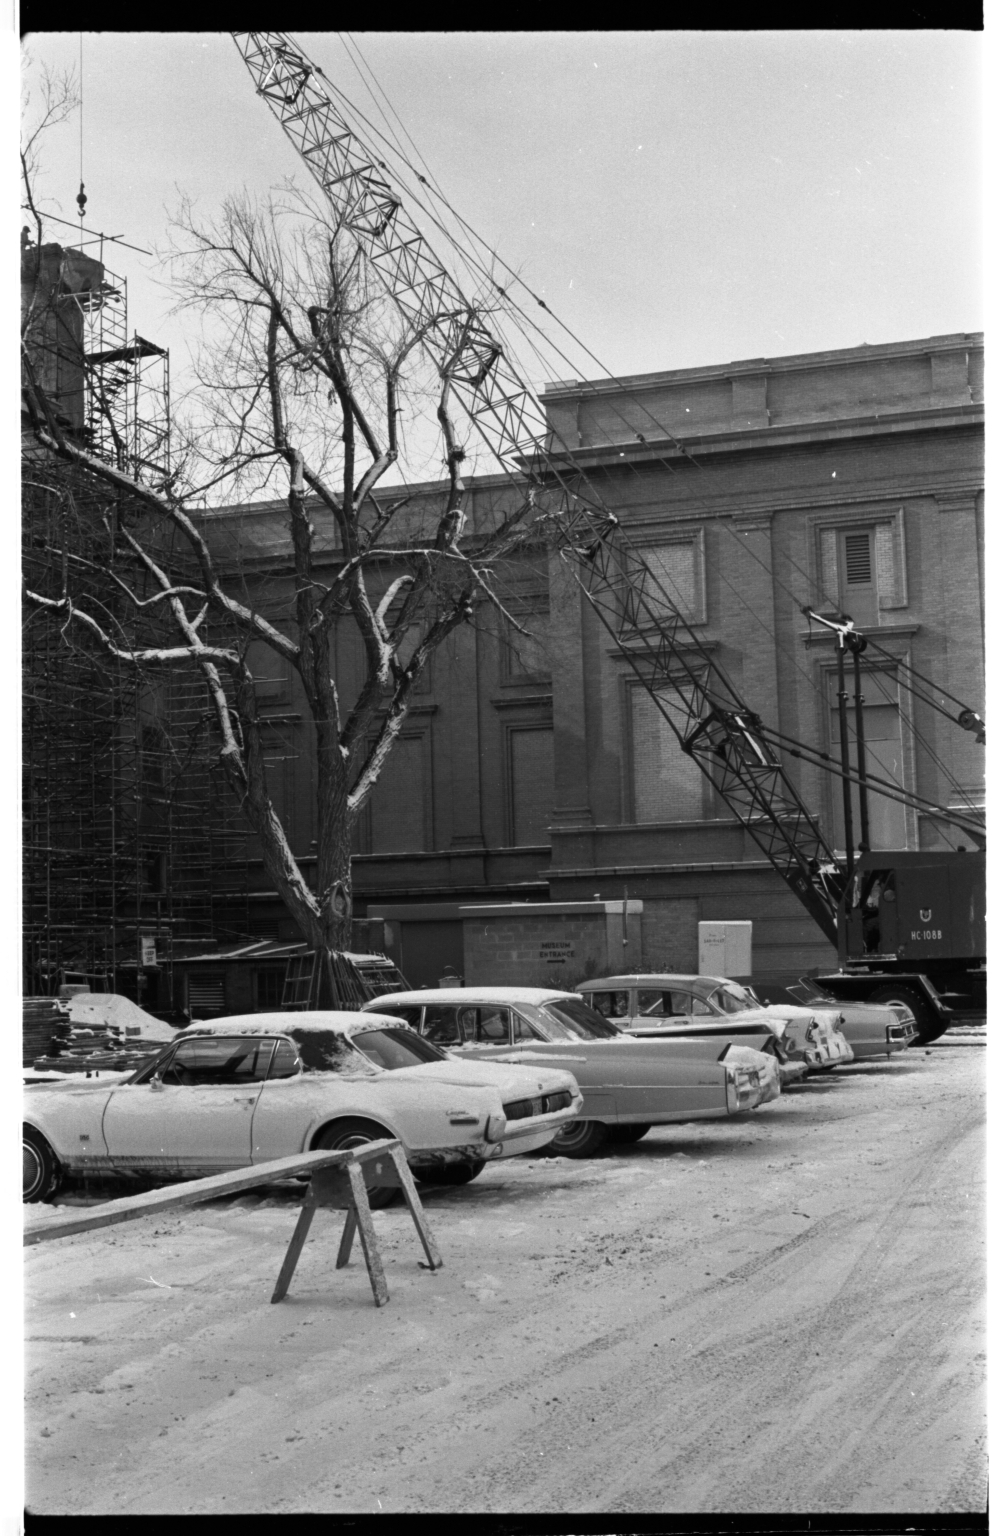 1971 Roof Construction and Structural Repair